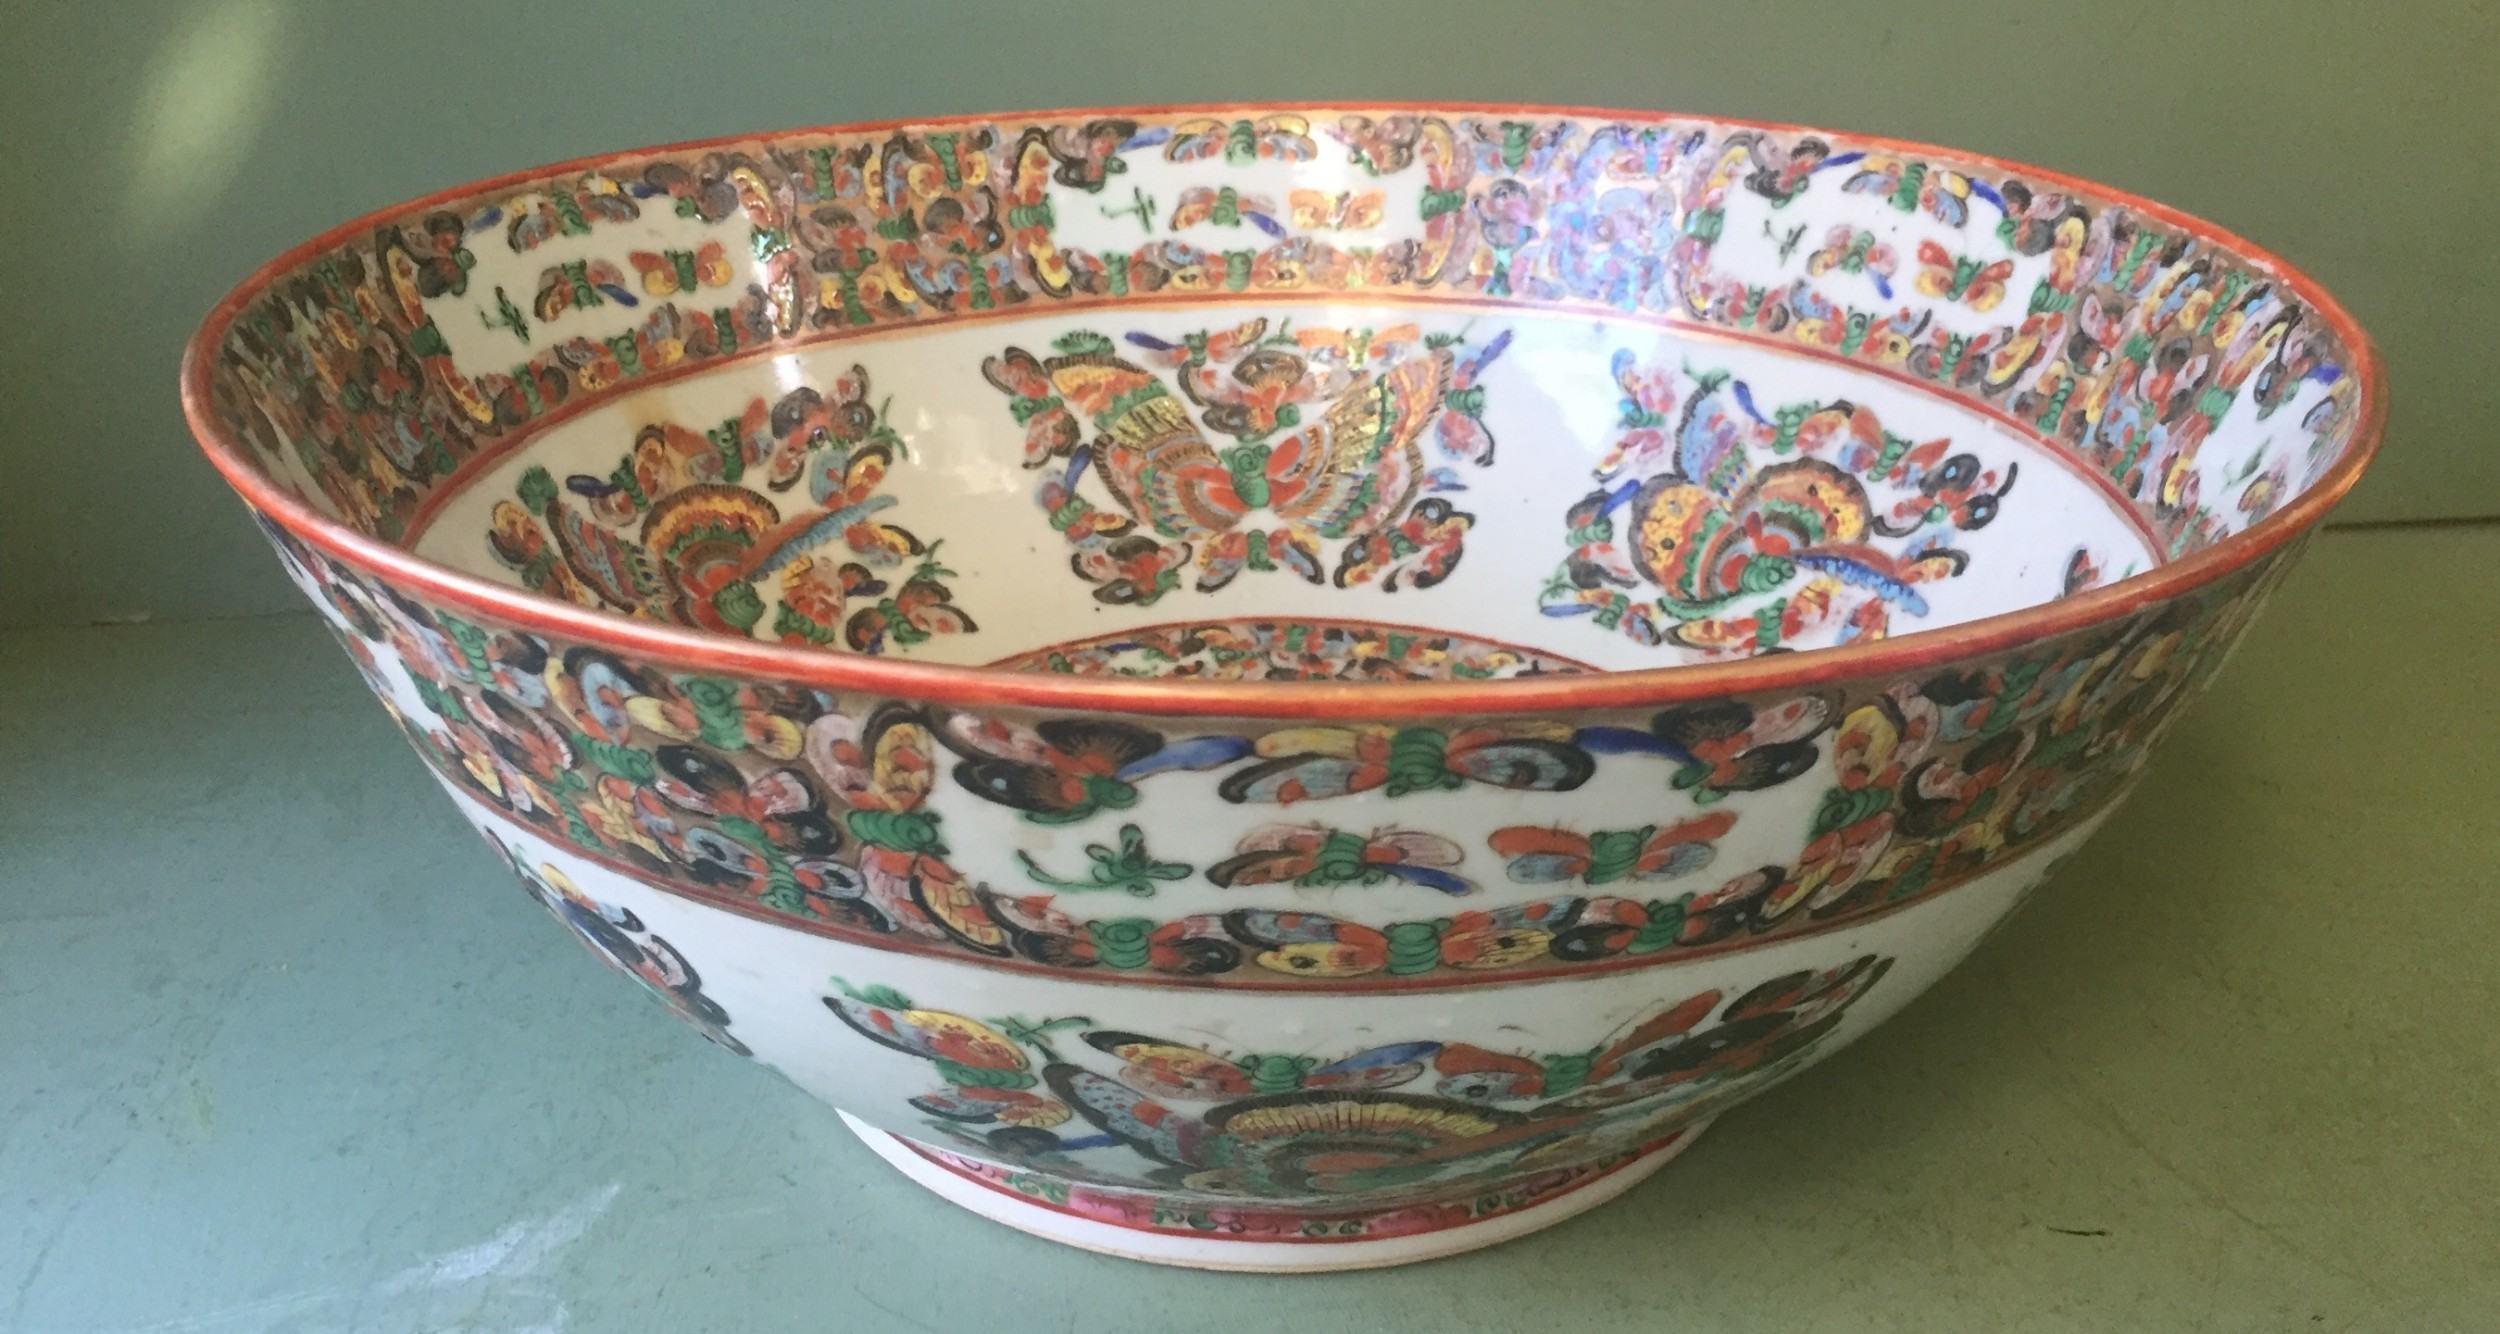 fine quality c19th chinese cantonese export porcelain enamel decorated punch bowl of good large scale with unusual butterfly designs